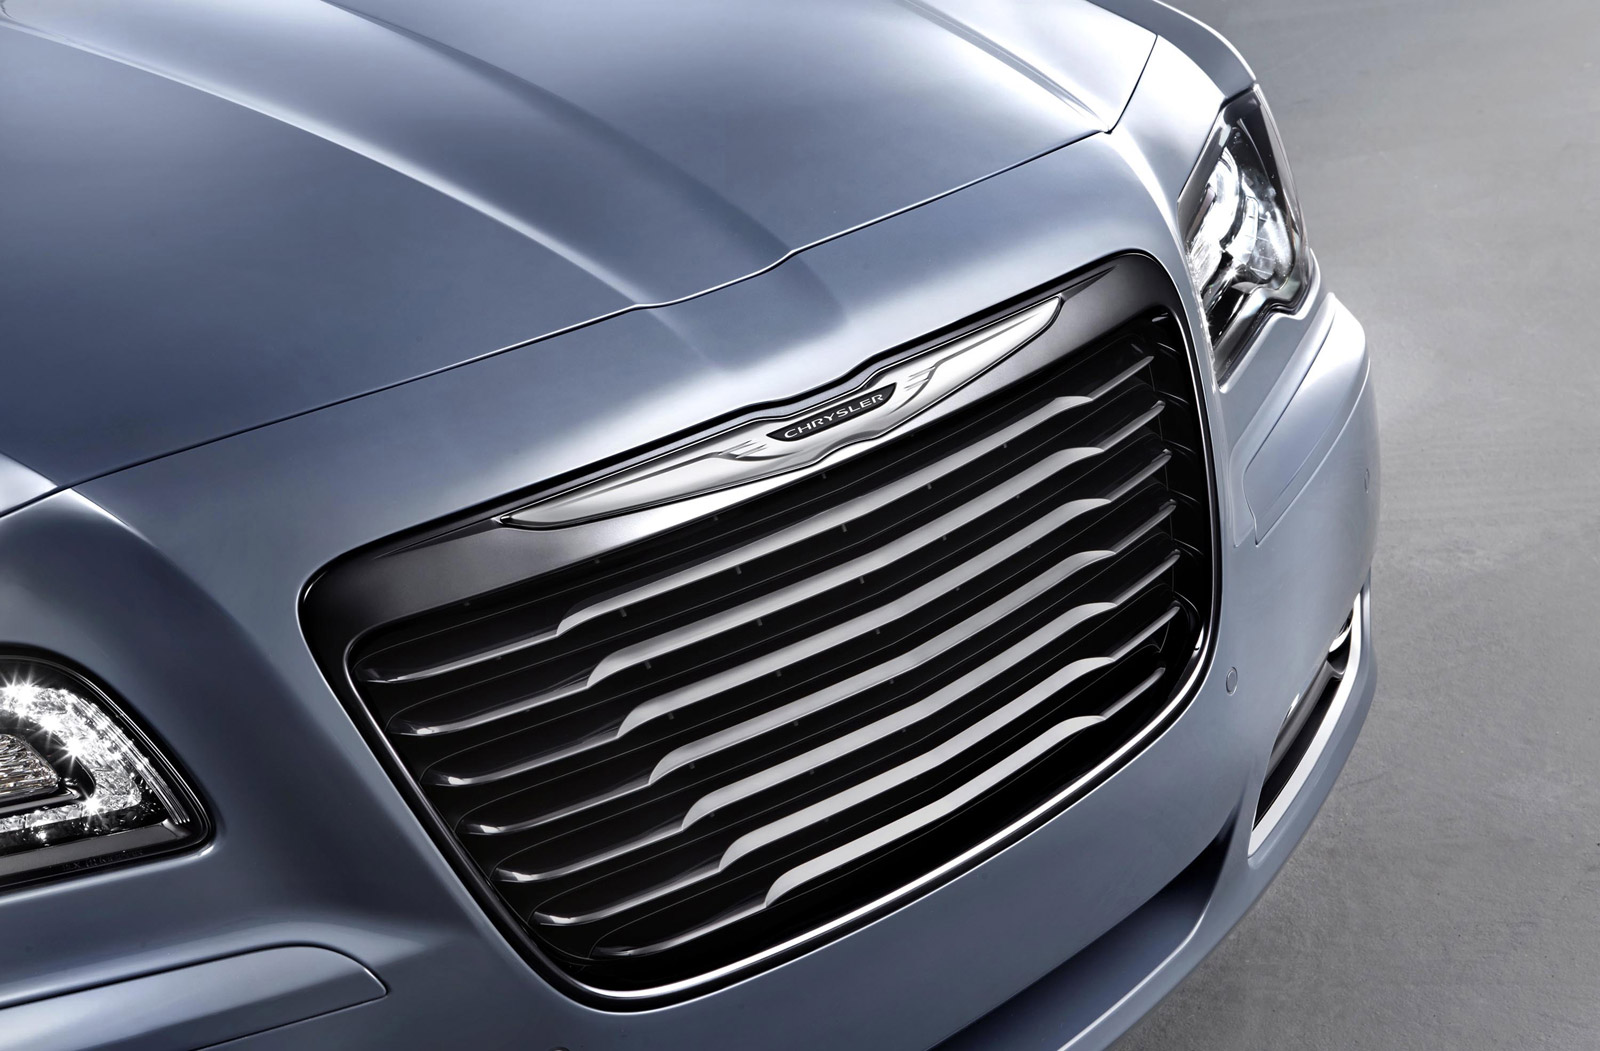 Chrysler To Go Mainstream, Launch New Compact And Plug-In Hybrids